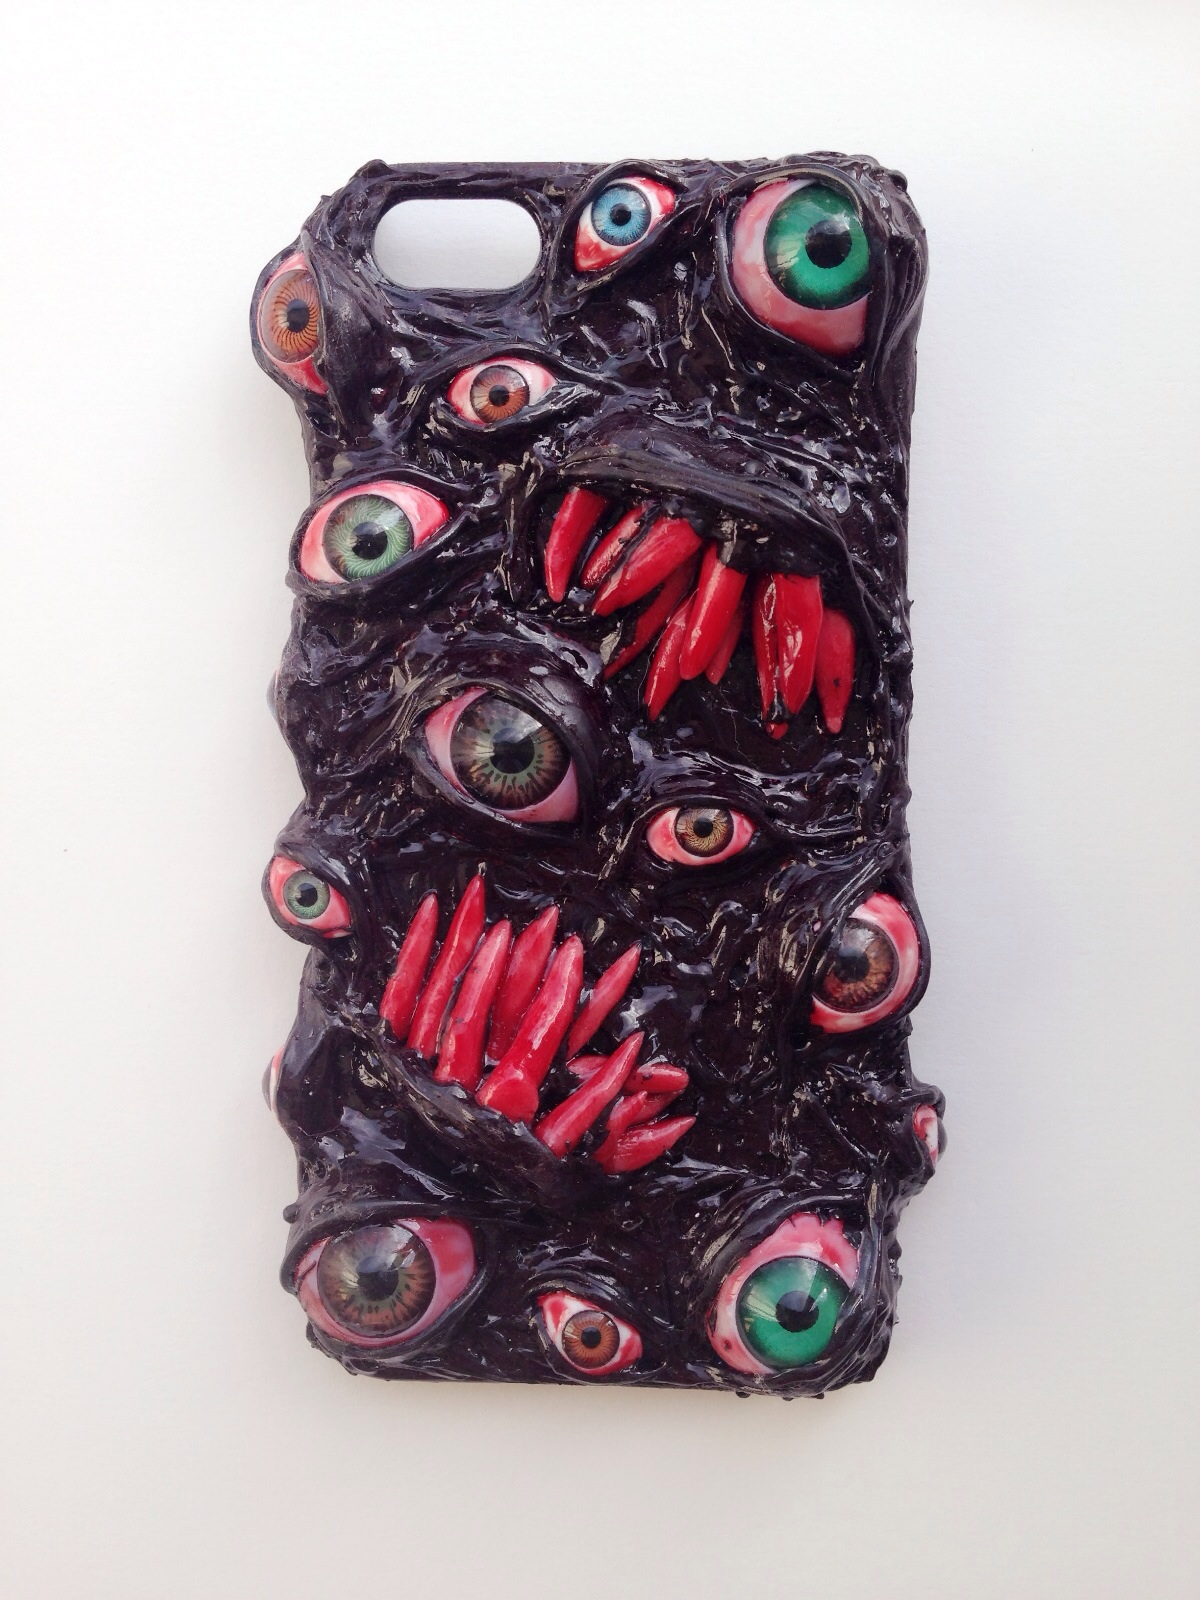 Handmade Decoden Phone Case Surreal Custom Horror Phone